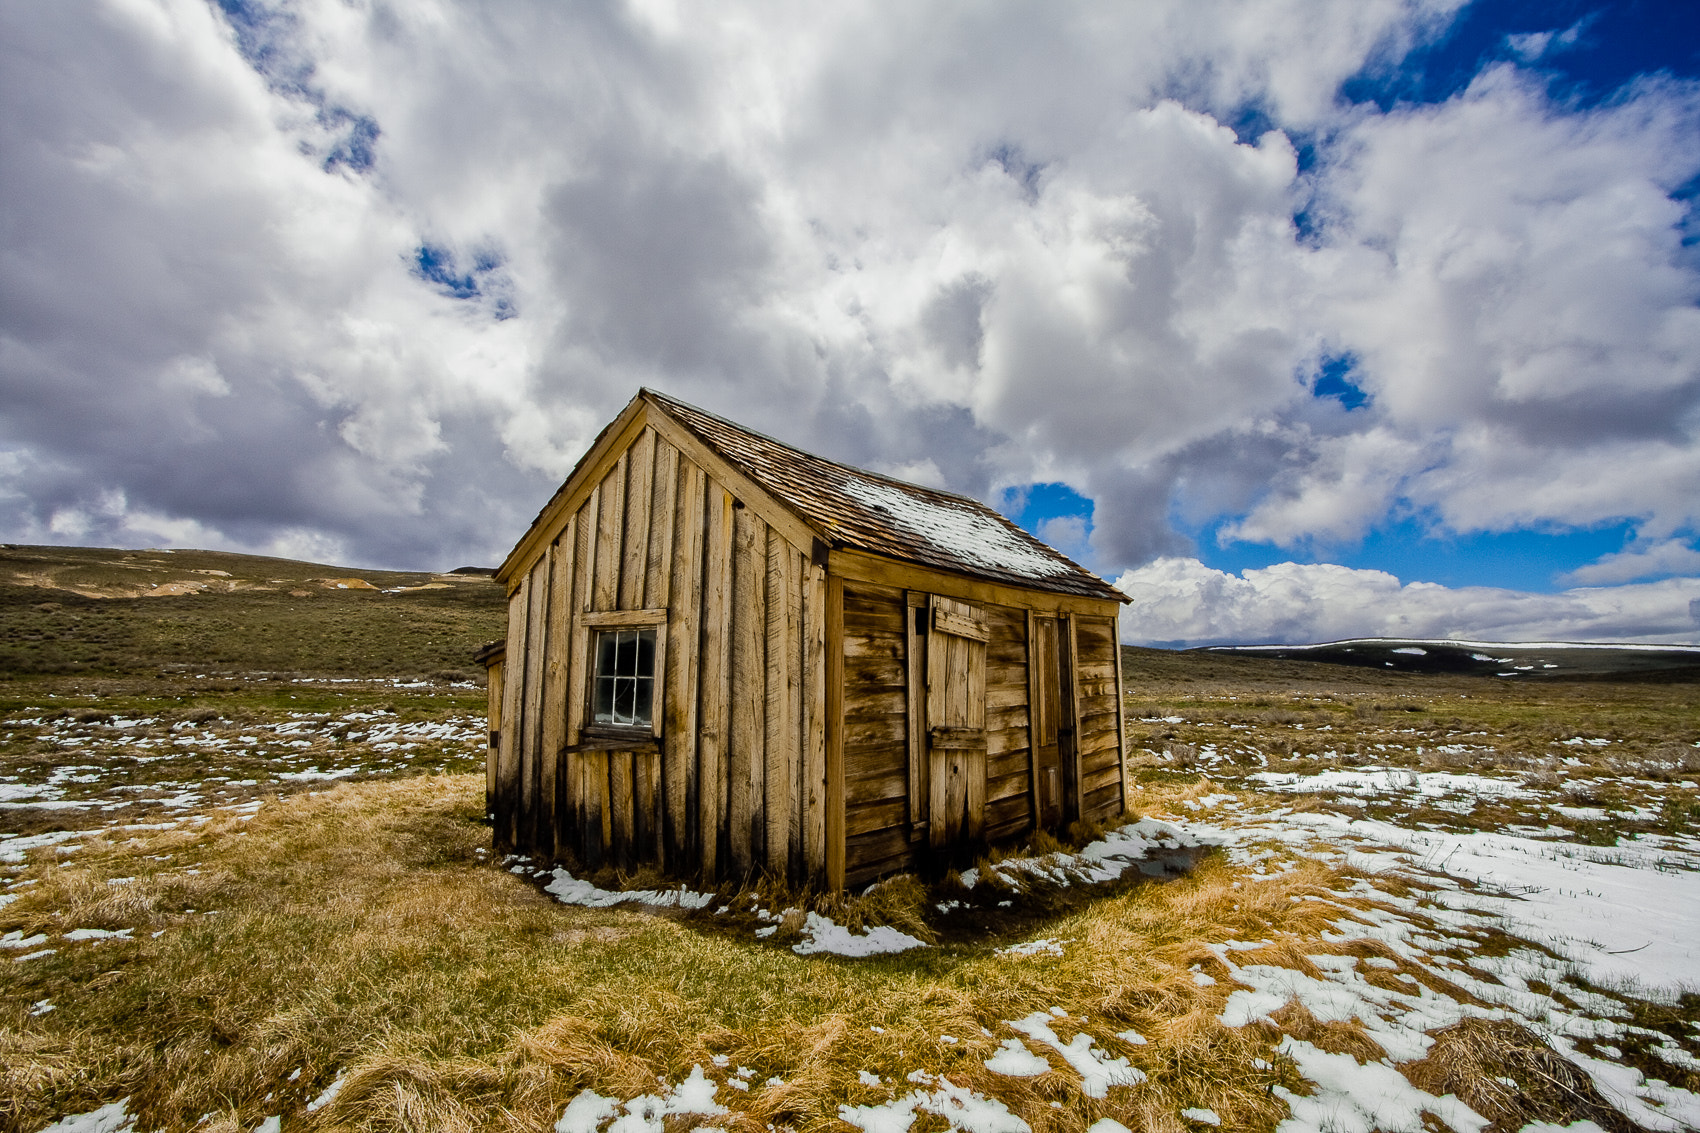 Photograph Bodie Number 01 by Mike Wiacek on 500px